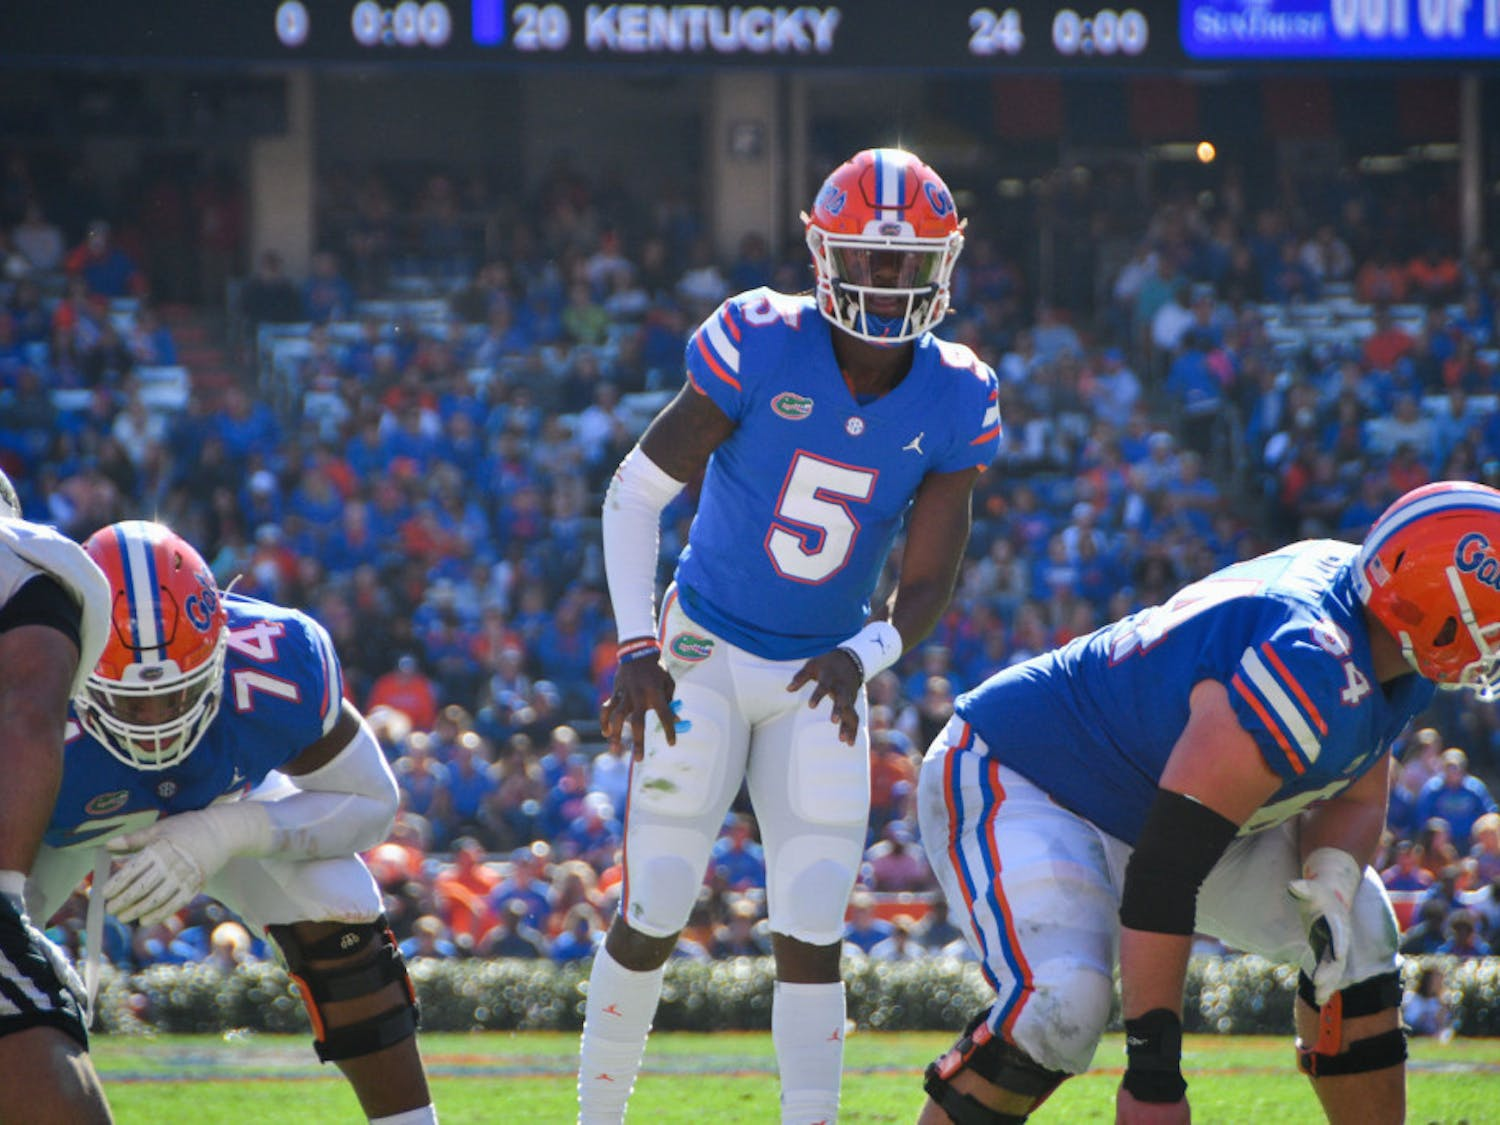 Florida quarterback Emory Jones gets ready for a play against Idaho during Florida's 63-10 win on Nov. 17, 2018.